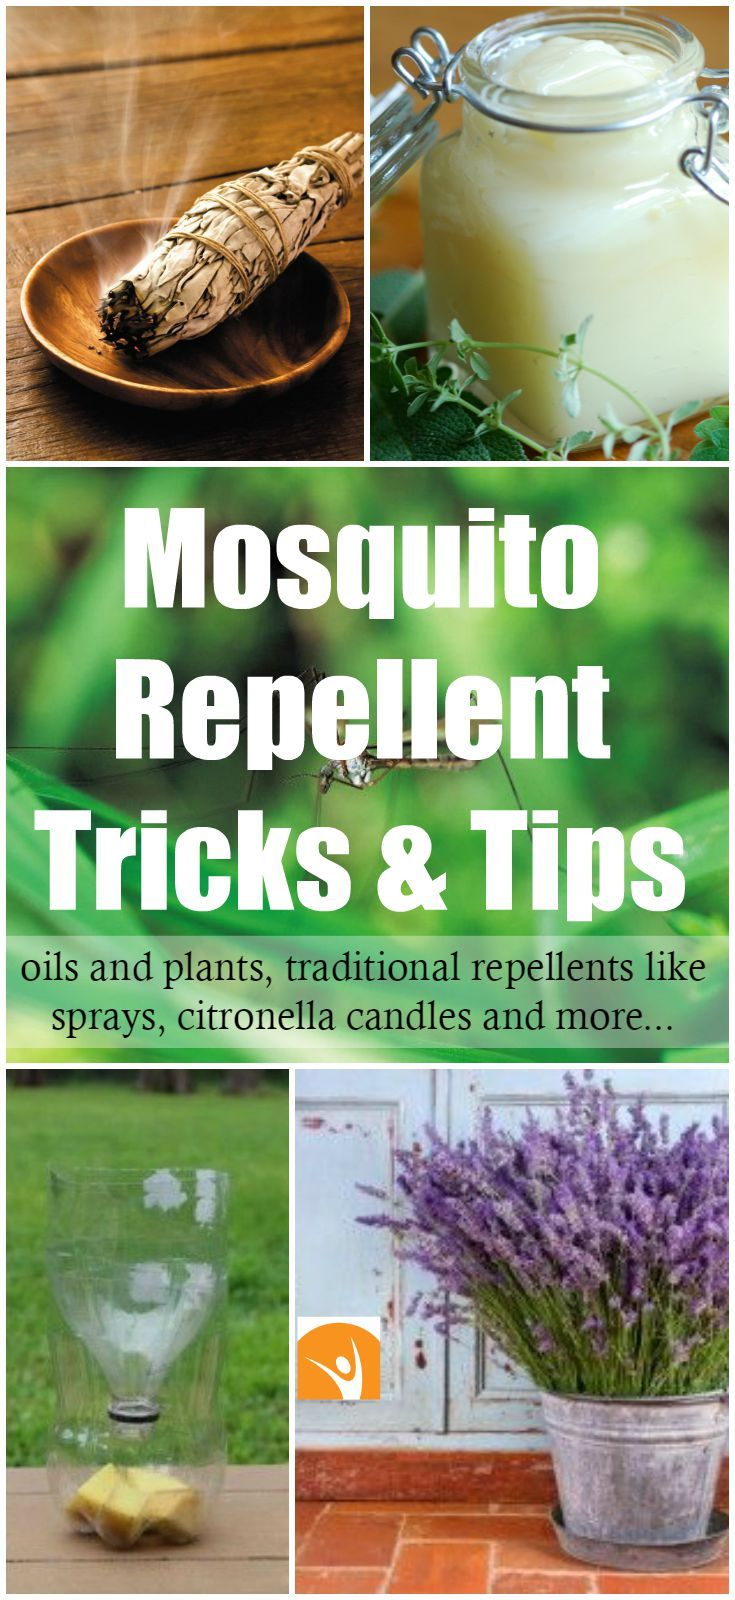 How to Get Rid of Mosquitoes with Easy Natural Remedies! | Healthy Food Mind